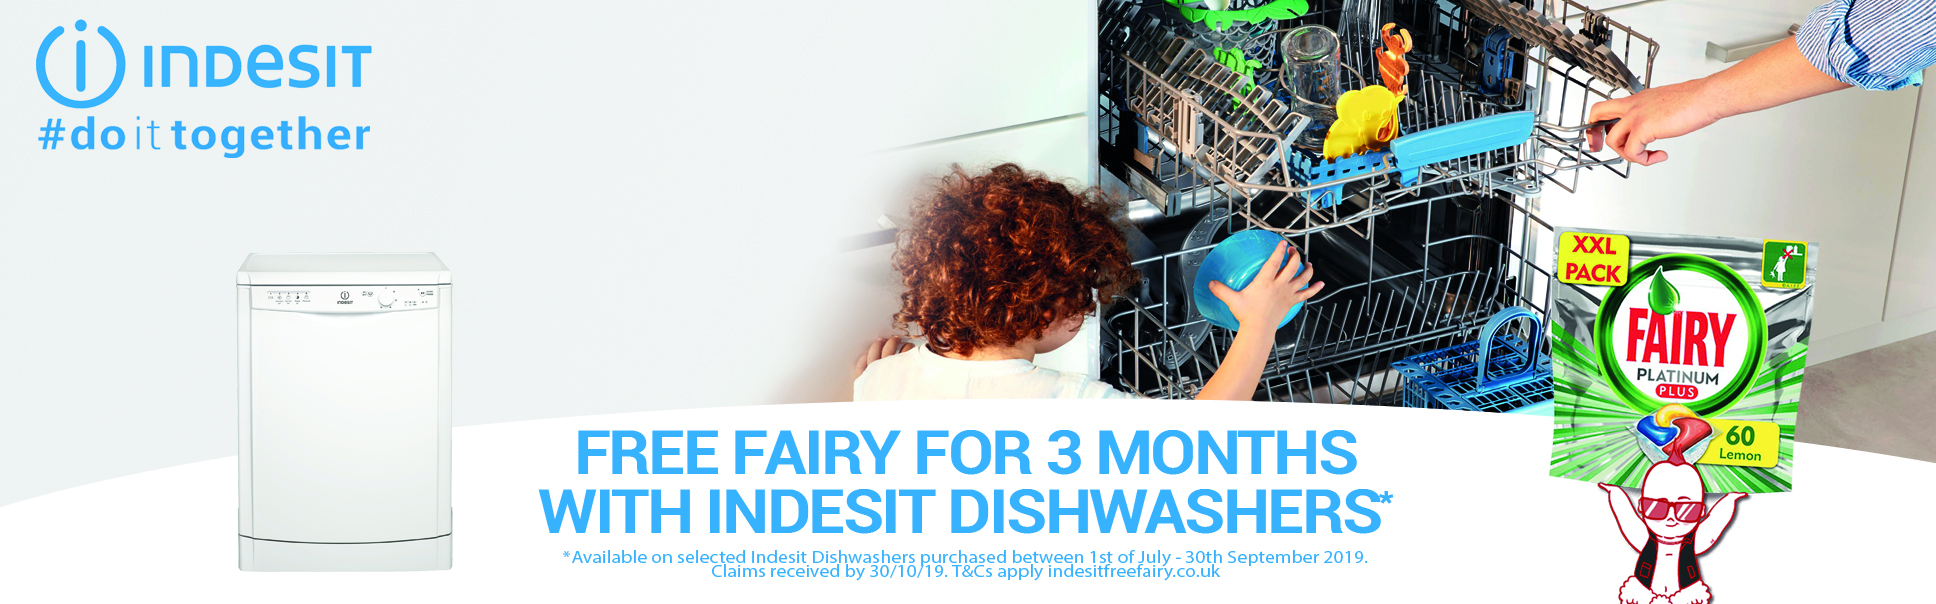 Free Fairy Offer